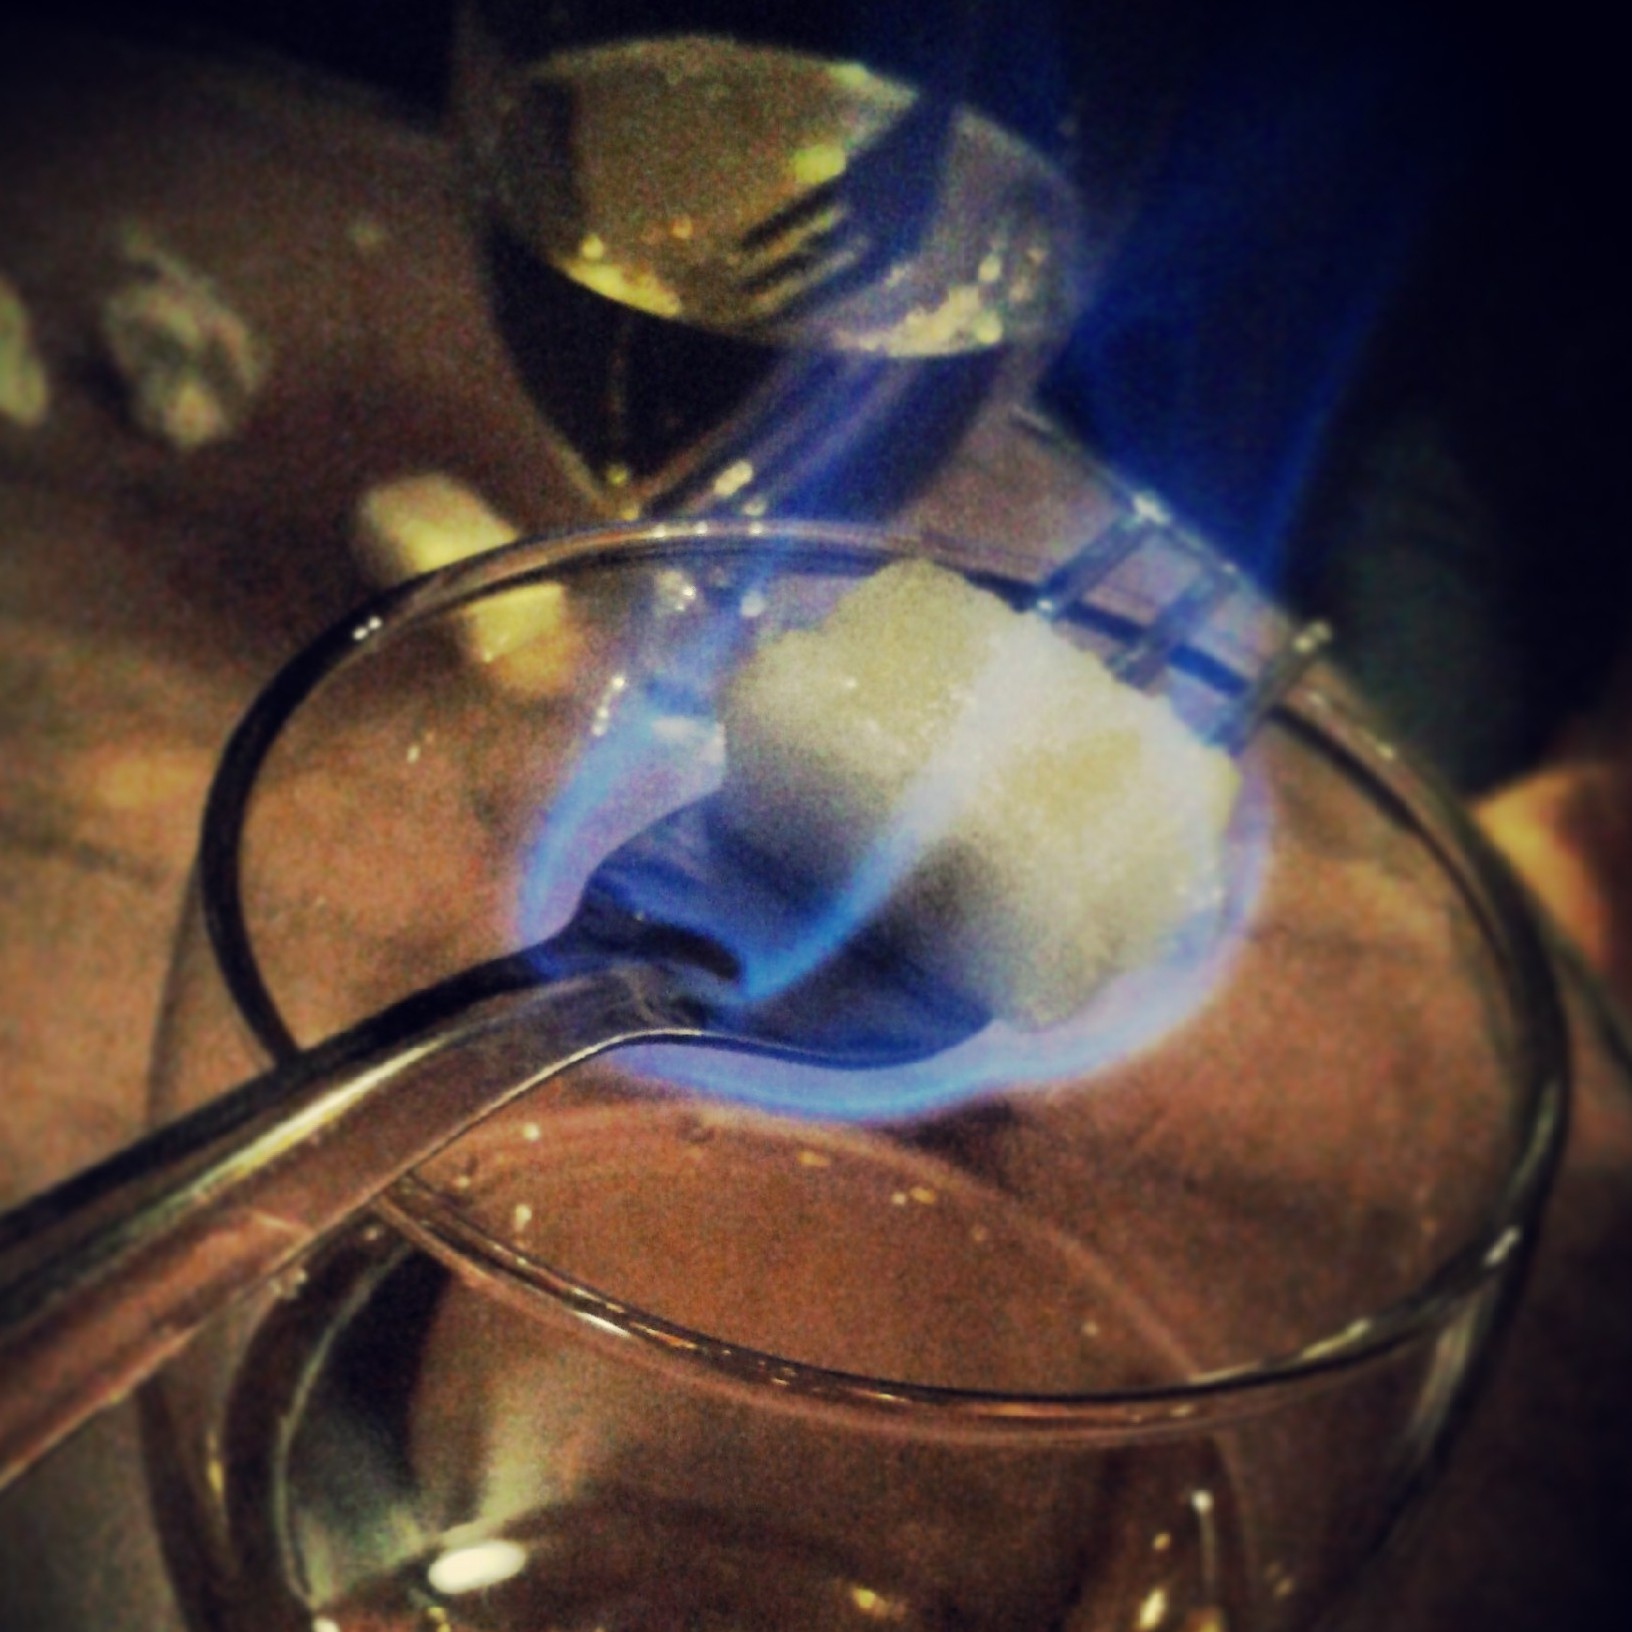 Blue flame over absinthe